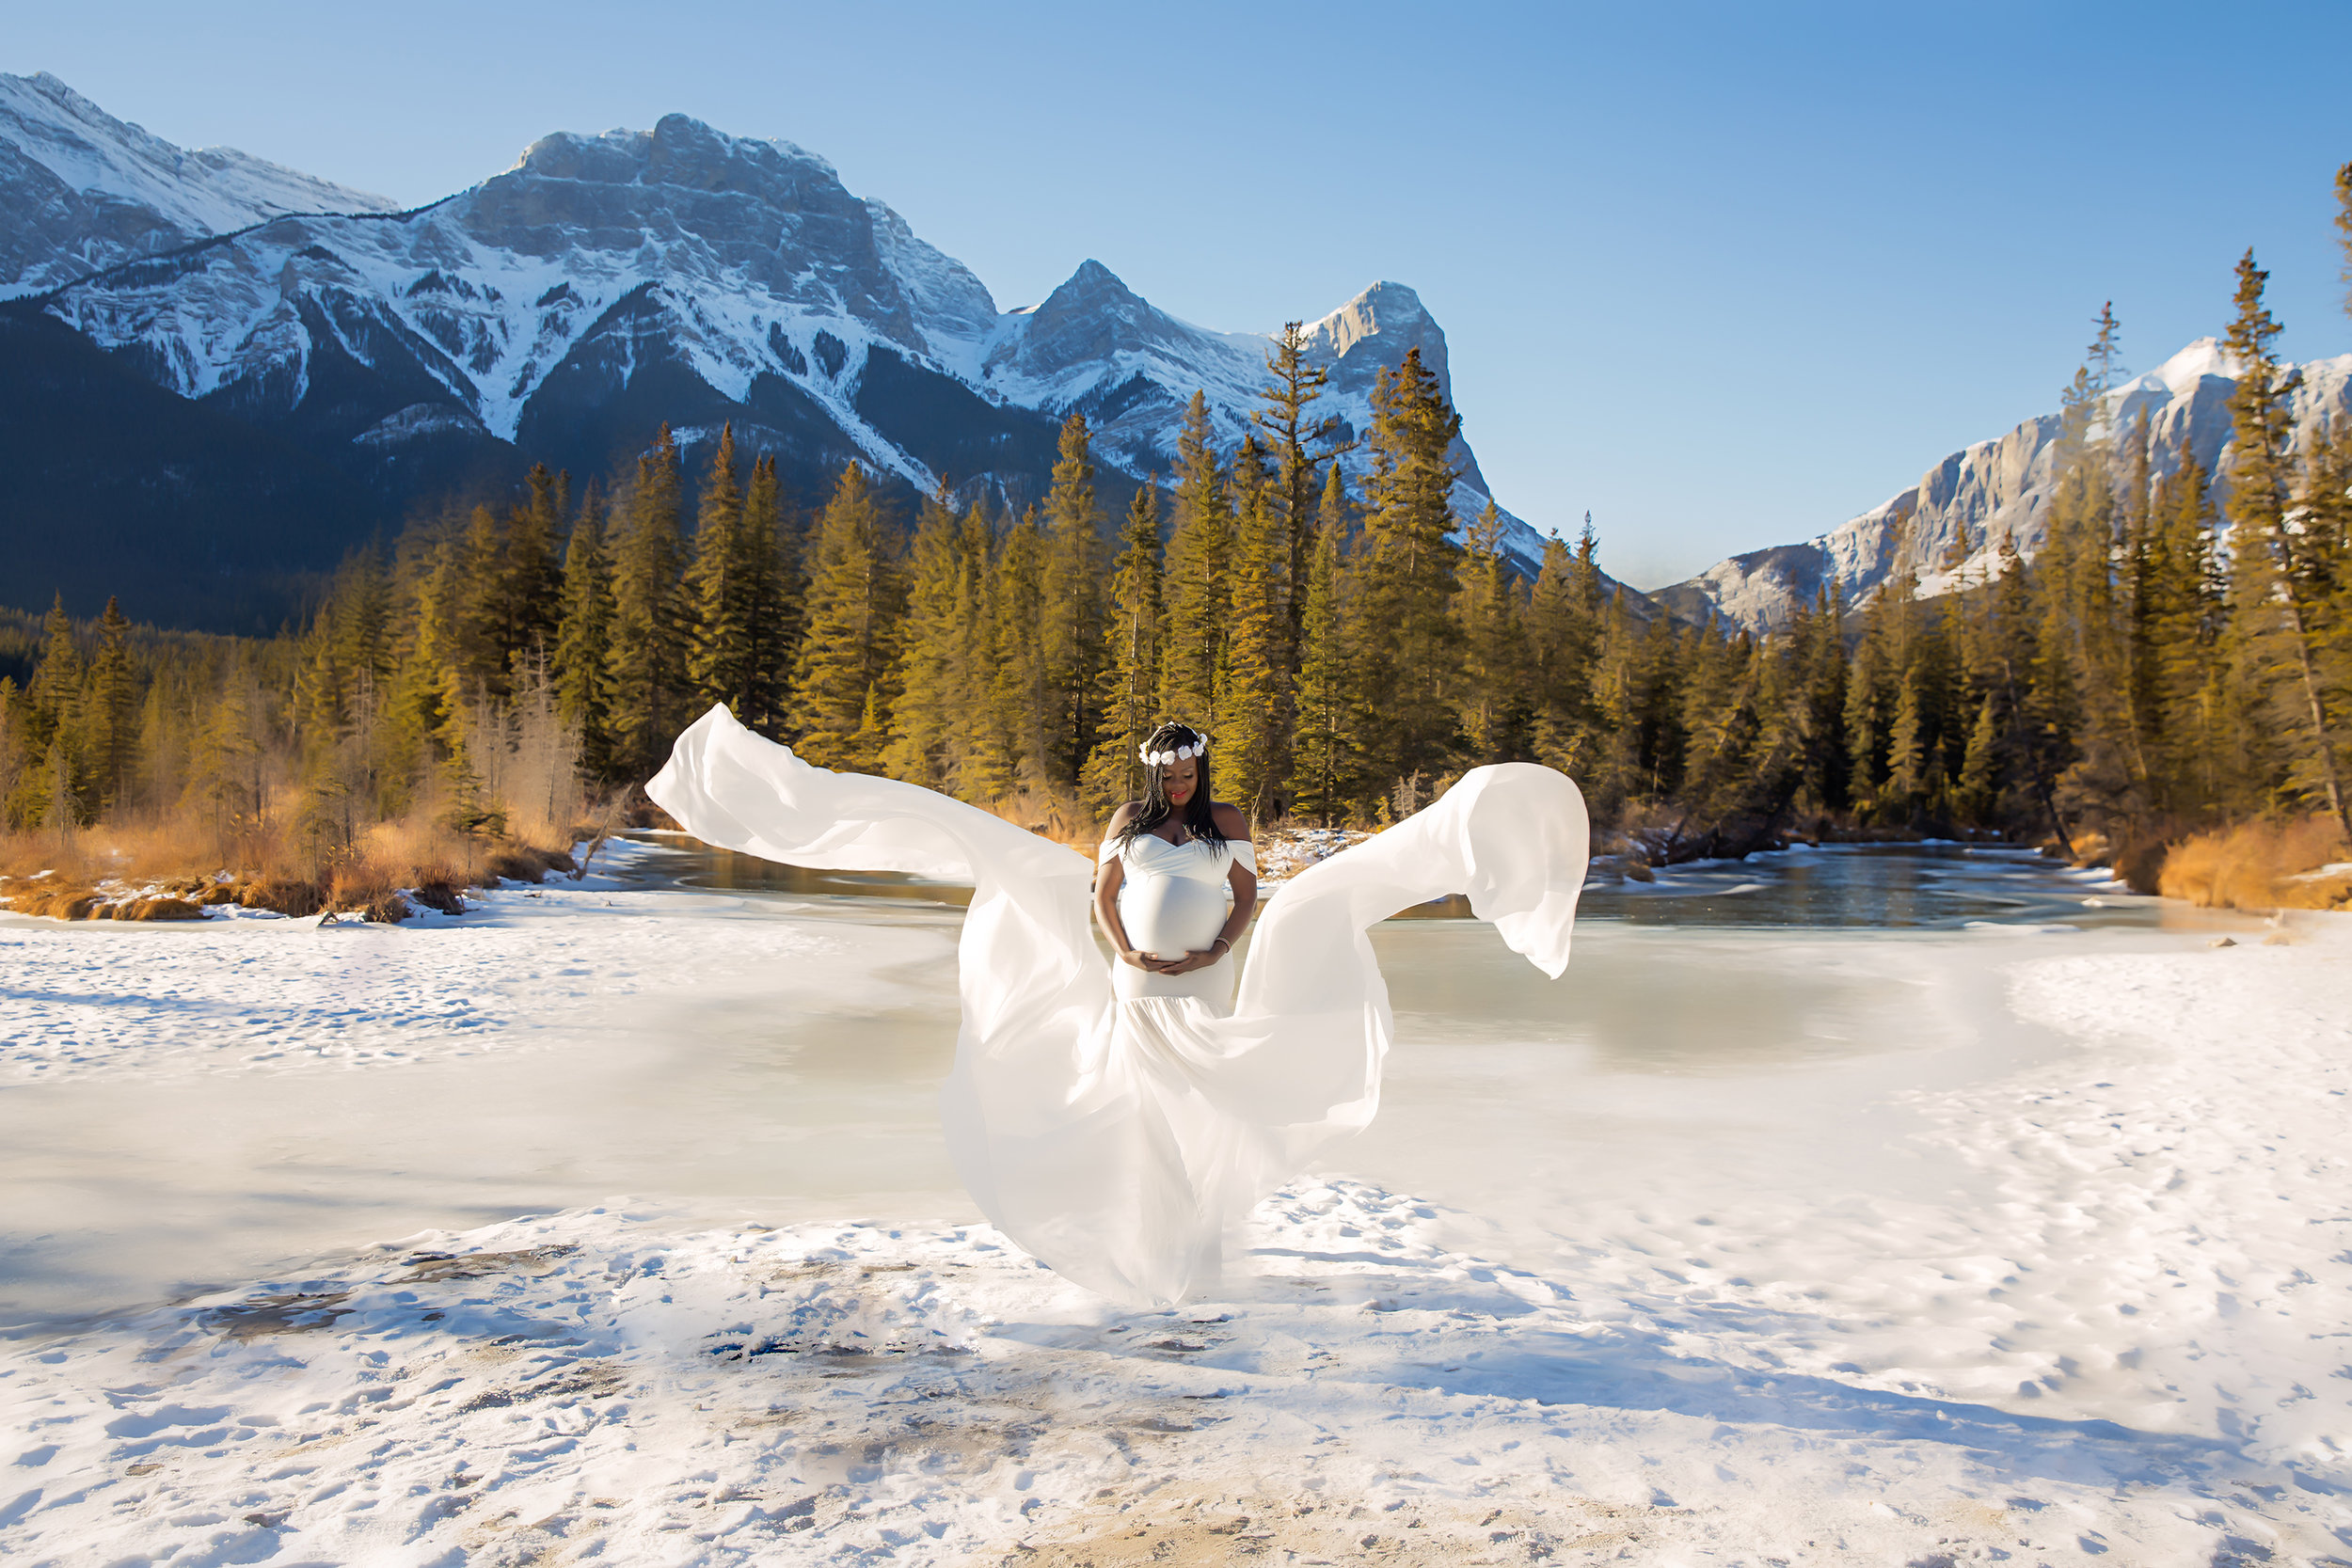 Beautiful mother to be in a white gown on a snow with Rocky Mountains and forest in the background. Calgary Maternity Photographer - Mountain Maternity Session in Alberta - Milashka Photography